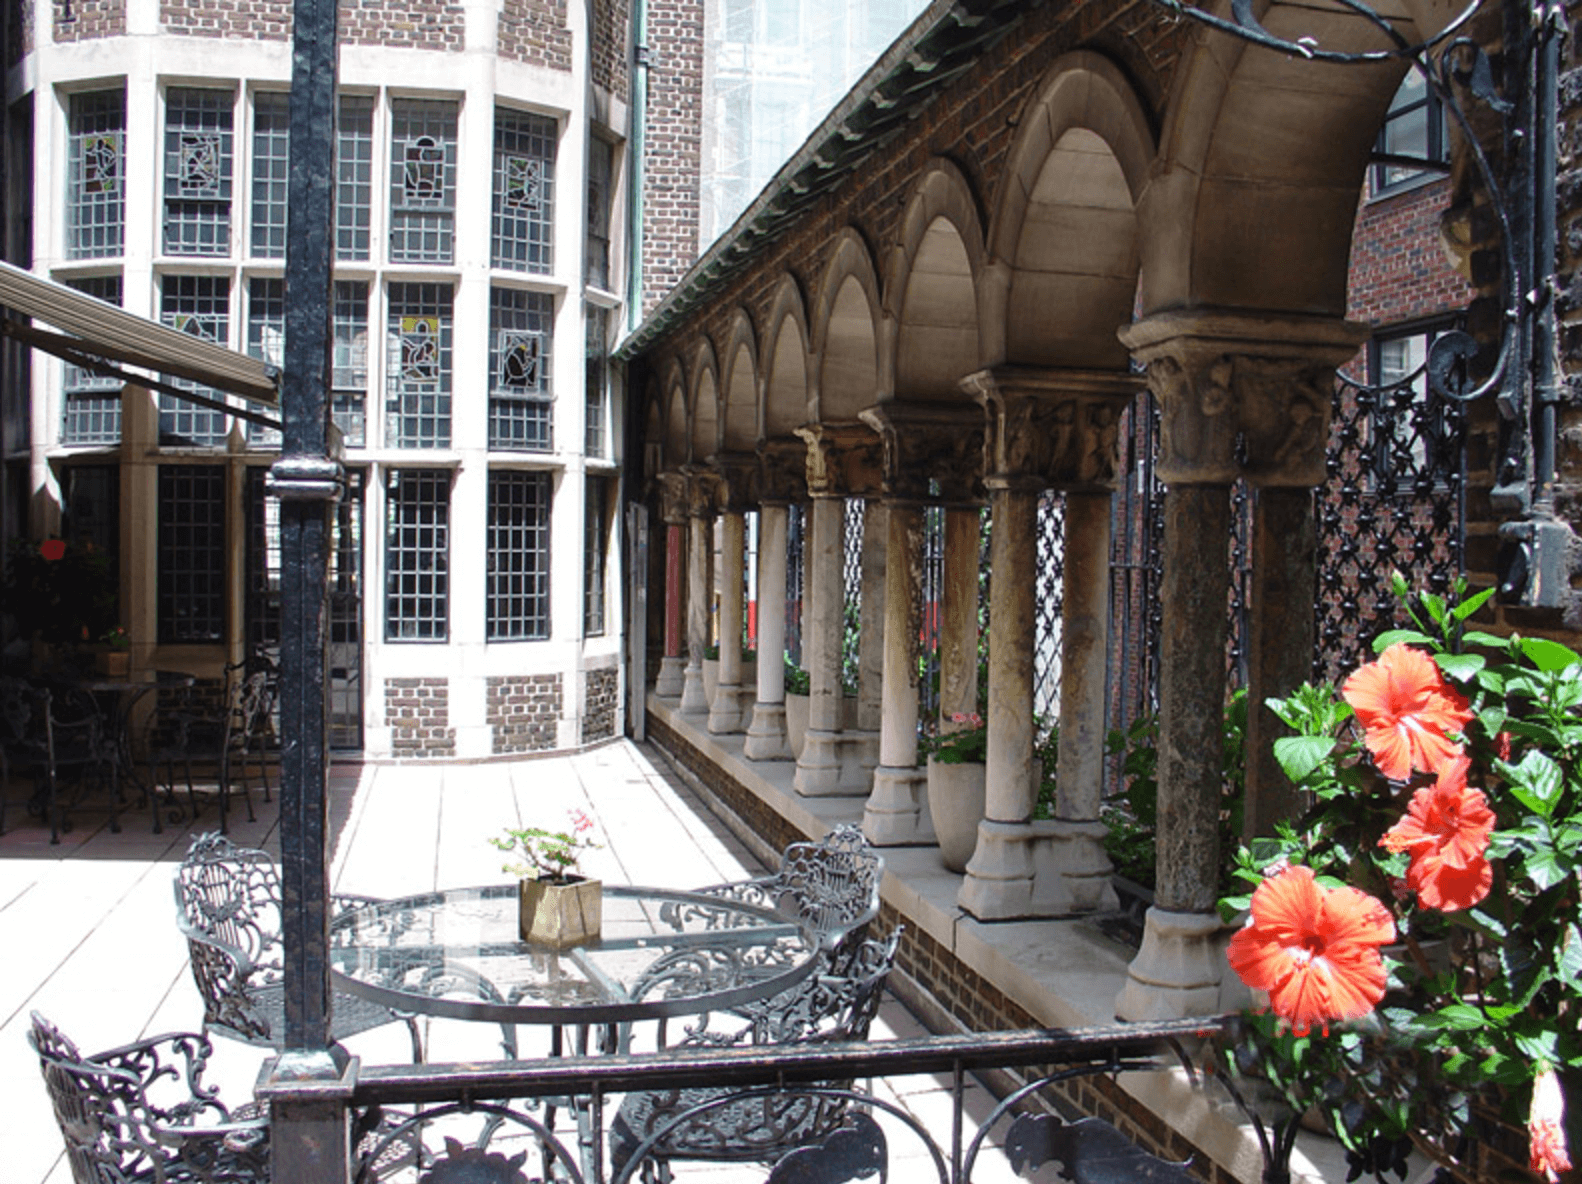 Curiosities Our Bucket Lists 5 Offbeat Museums NYC Explorers Club Patio